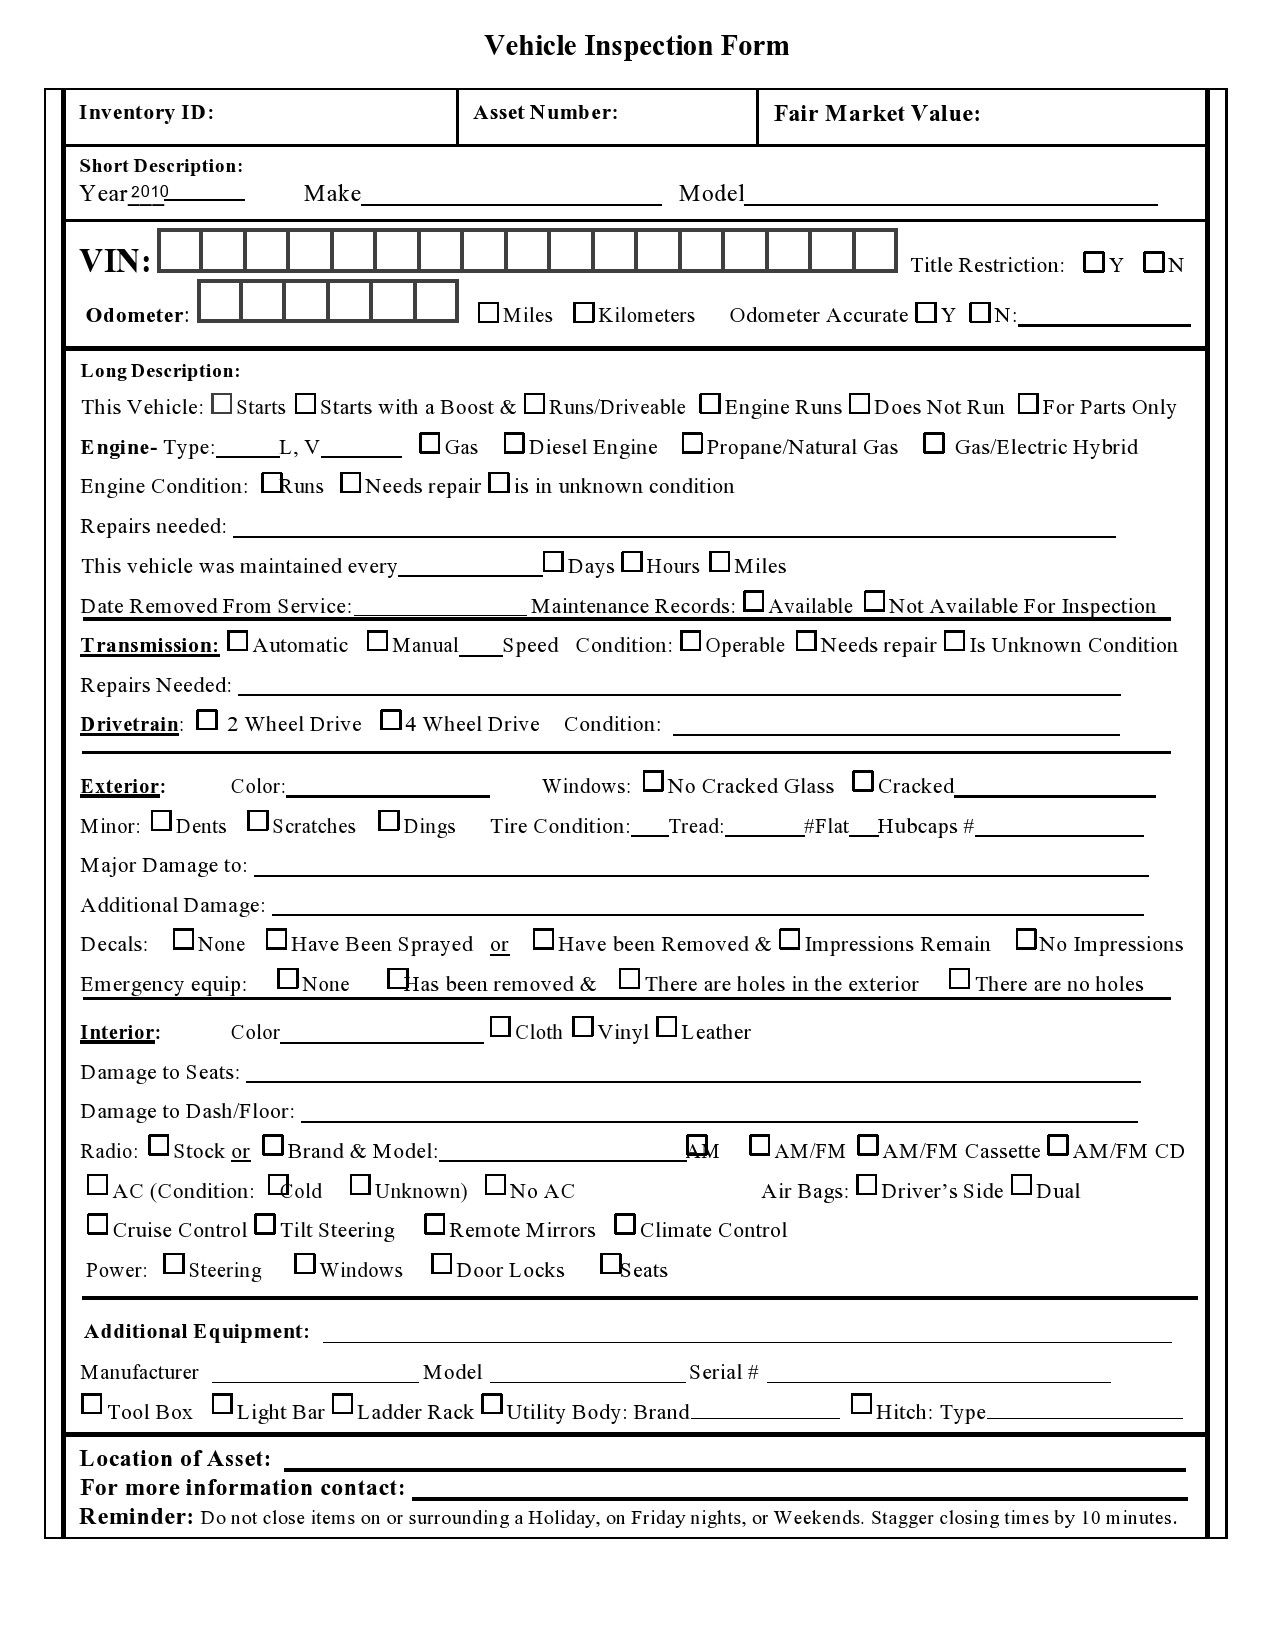 Free vehicle inspection form 05